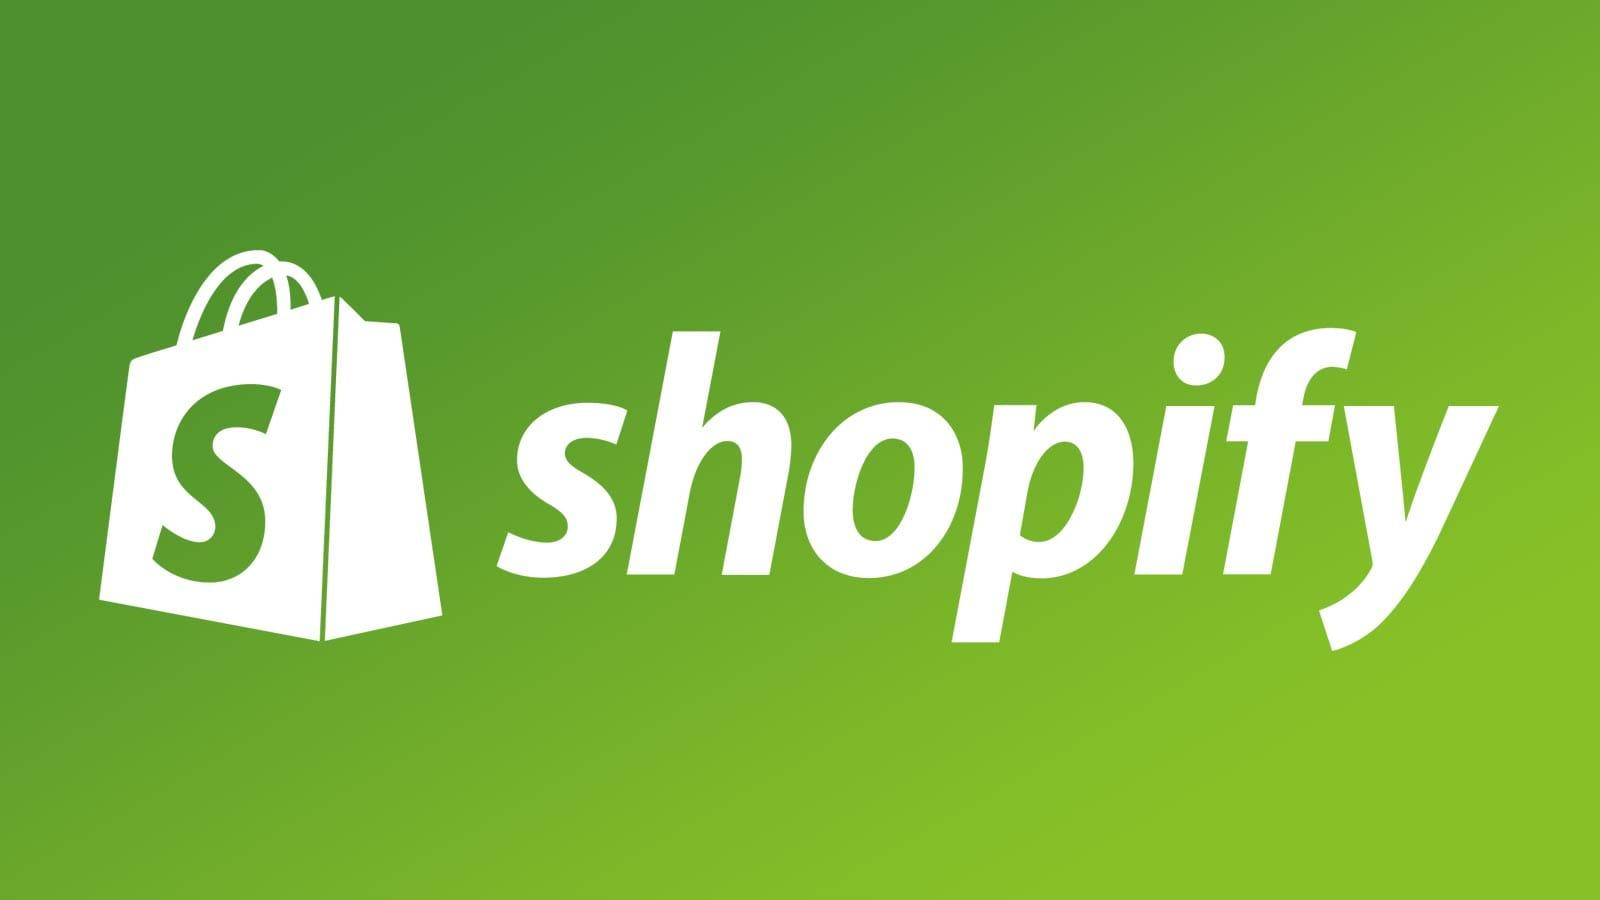 Shopify: This Is A Speculation - Shopify Inc. (NYSE:SHOP) | Seeking Alpha